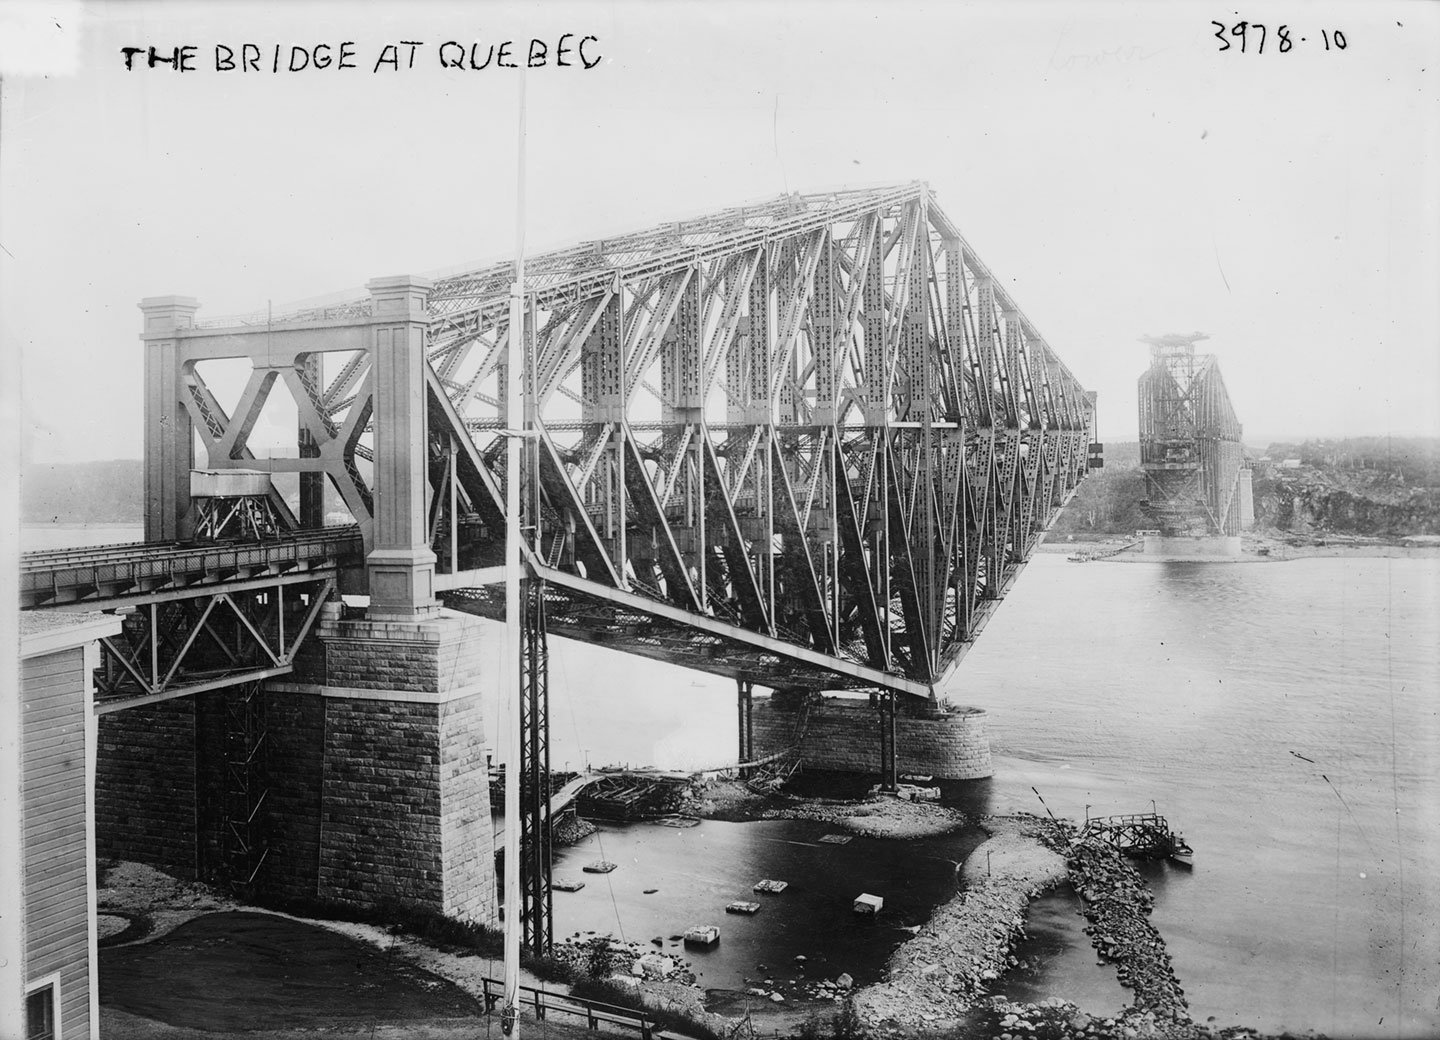 Québec Bridge collapses with huge loss of life